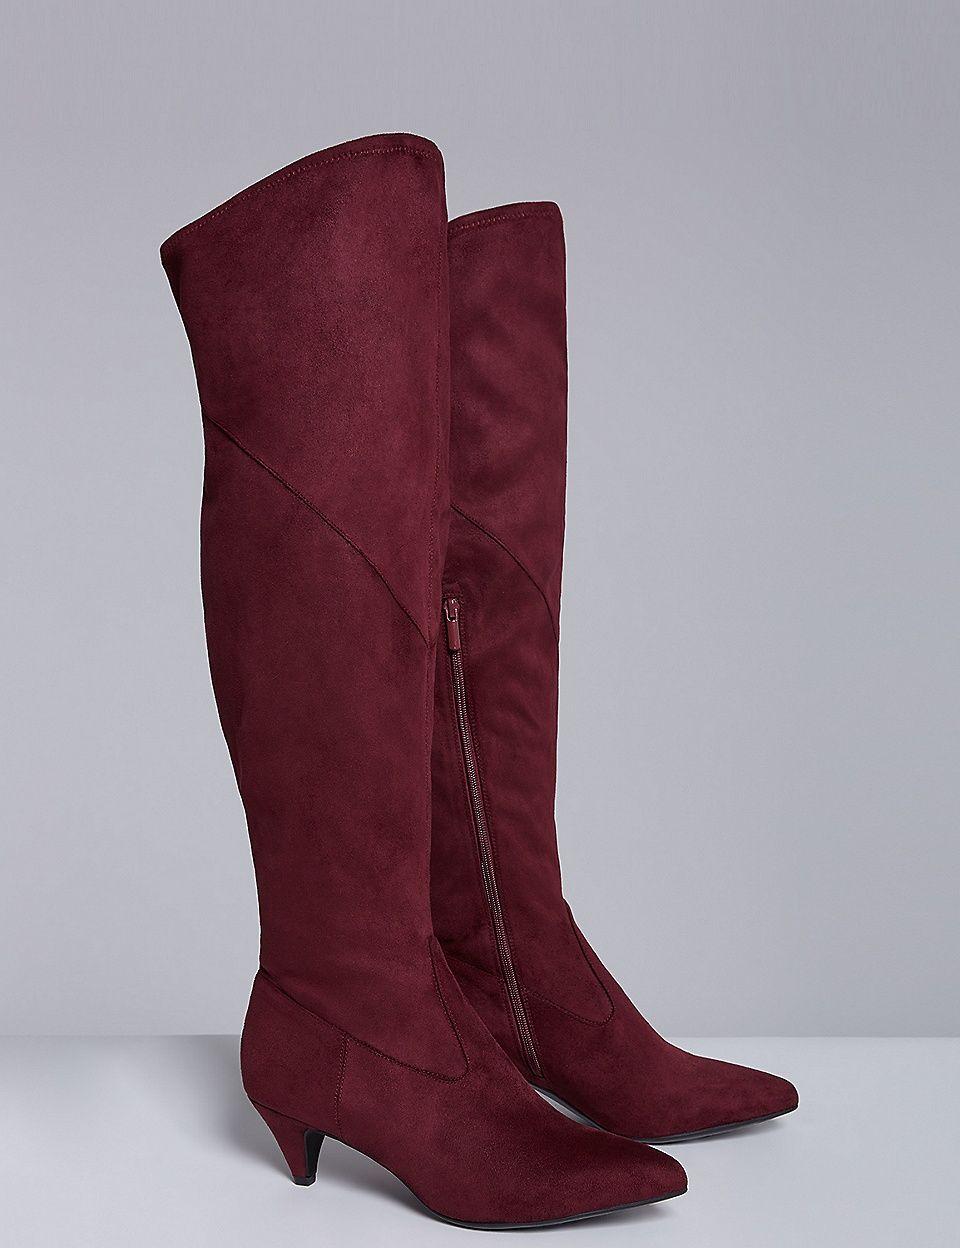 Wide Calf Boots | Plus Size Boots in Wide Width Sizes | Lane